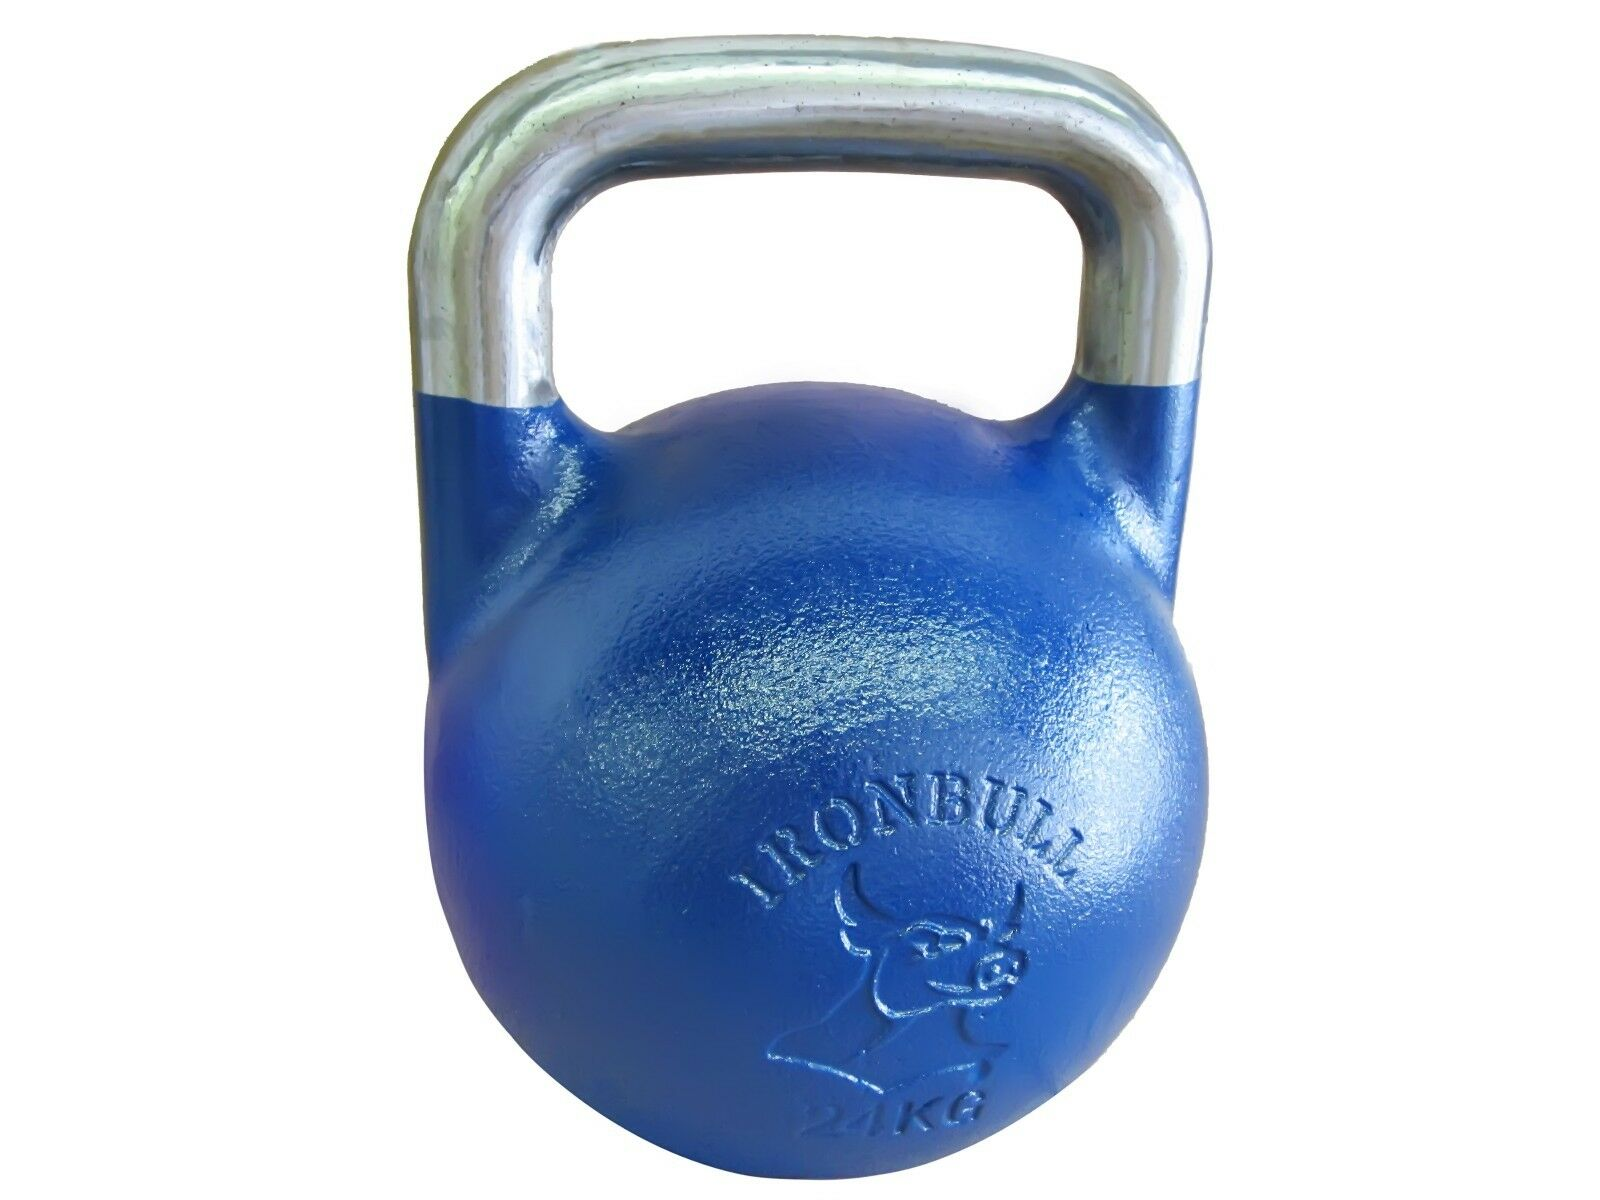 24 kg Kettlebell - Competition ( 52.91 lbs )